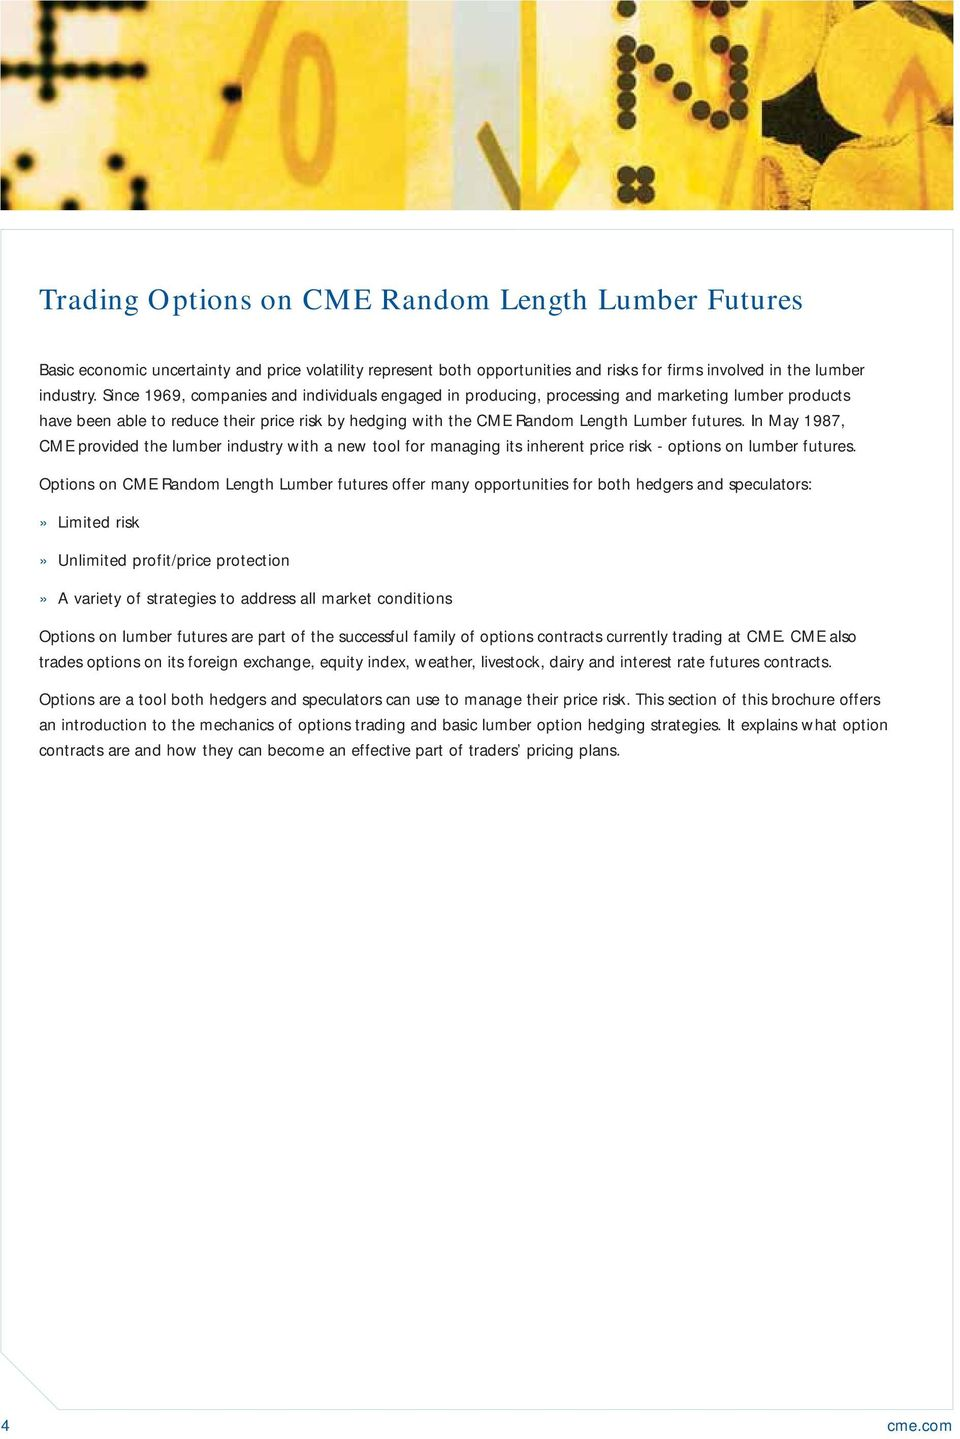 In May 1987, CME provided the lumber industry with a new tool for managing its inherent price risk - options on lumber futures.